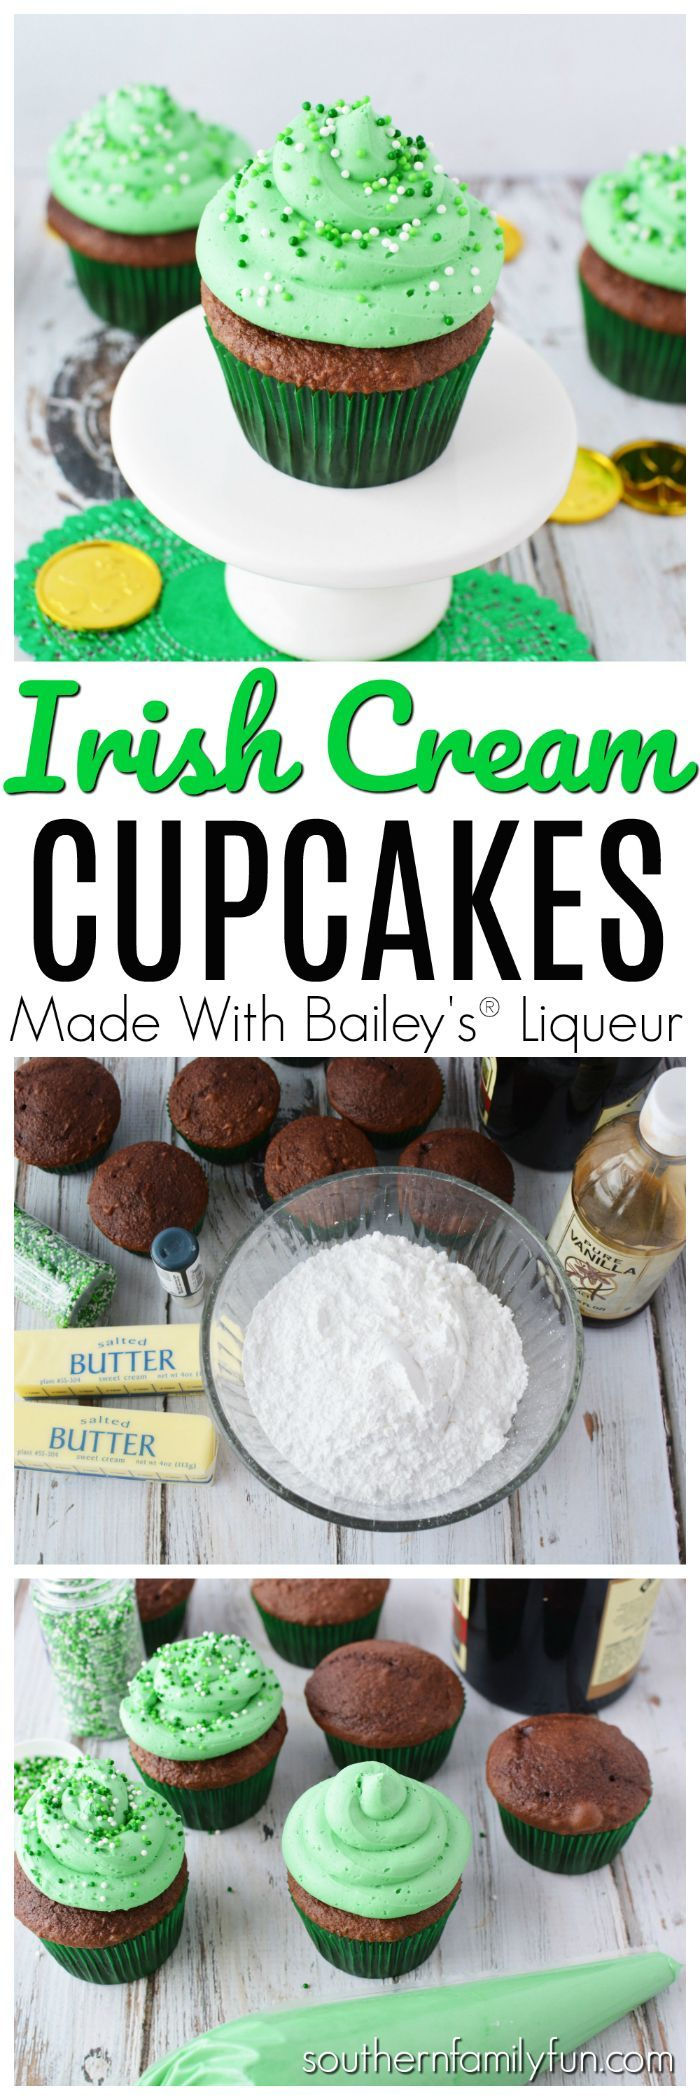 Incredibly delicious Irish Cream Cupcakes made with Baileys®️️ These cupcakes are perfect for your St. Patrick's Day festivities. The end result is delicious cupcakes that someone will have to slap your hand to get you to stop eating.  Irish Cream Cupcakes for the win! #IrishCreamCupcakes #StPatricksDayRecipes via @winonarogers